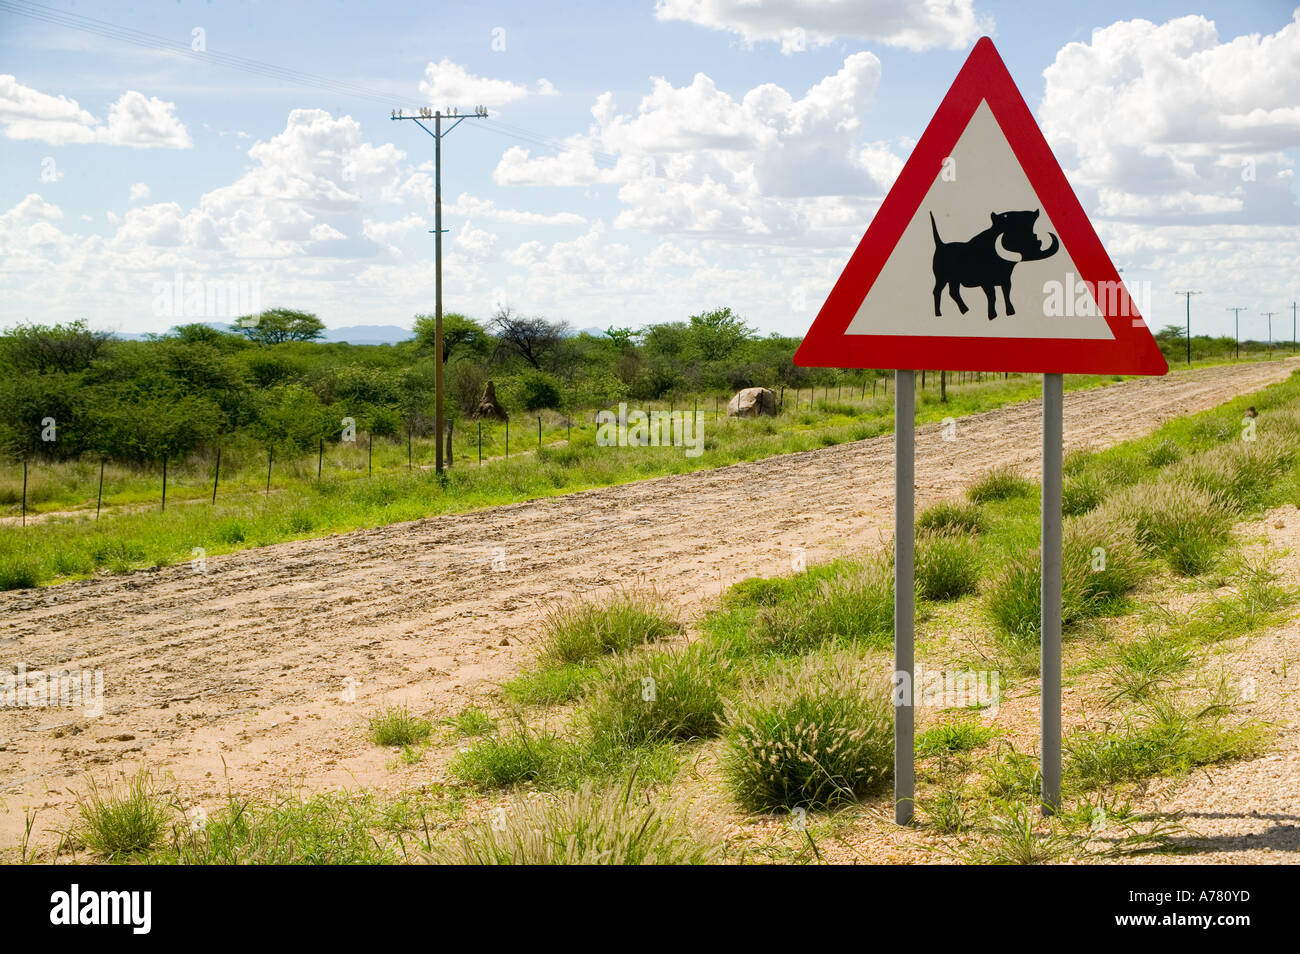 Funny road signs in Africa - Stock Image